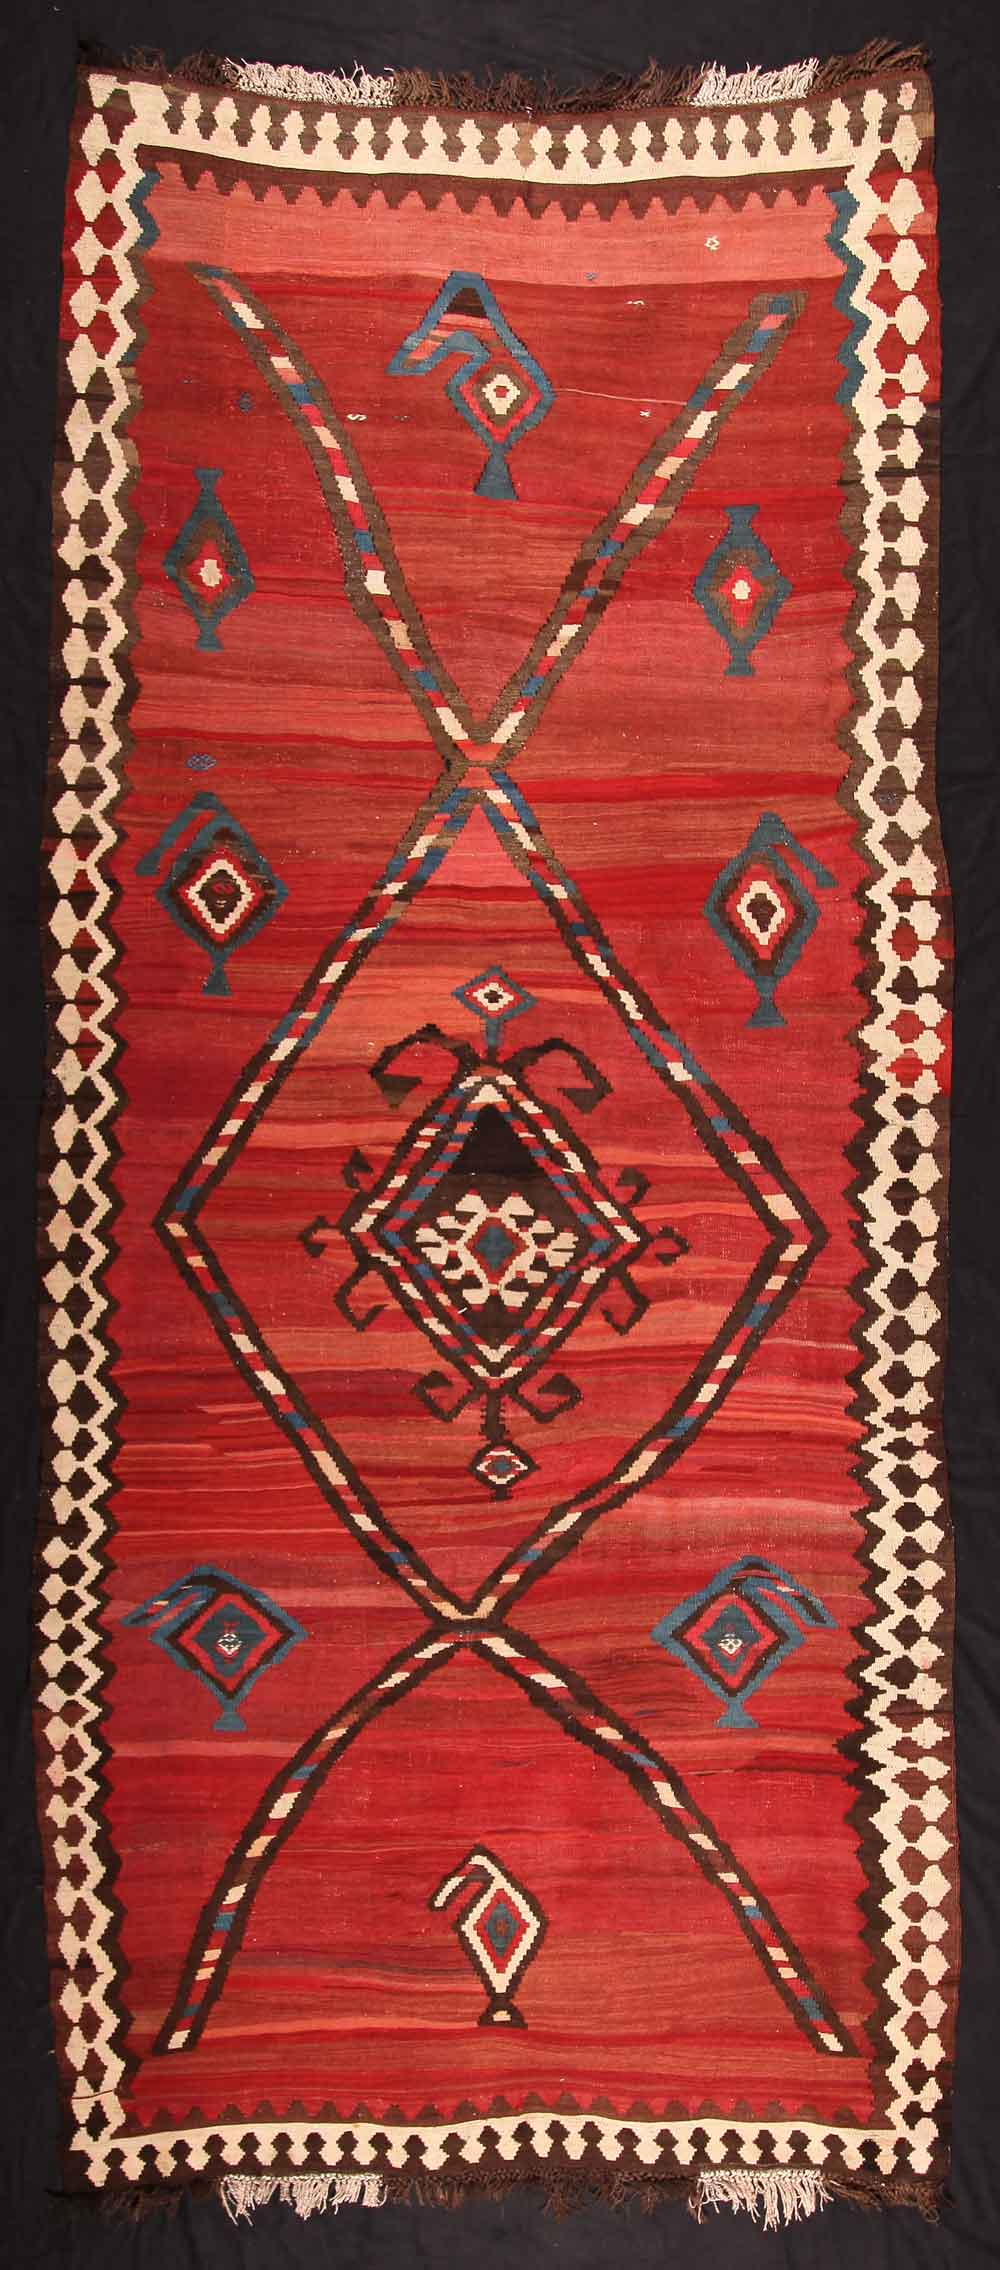 Kilim, 19th century Northwest-Persia, Azerbaijan 172 x 361 cm. Neiriz Collection on view in 100 Kilims at Halle Germany